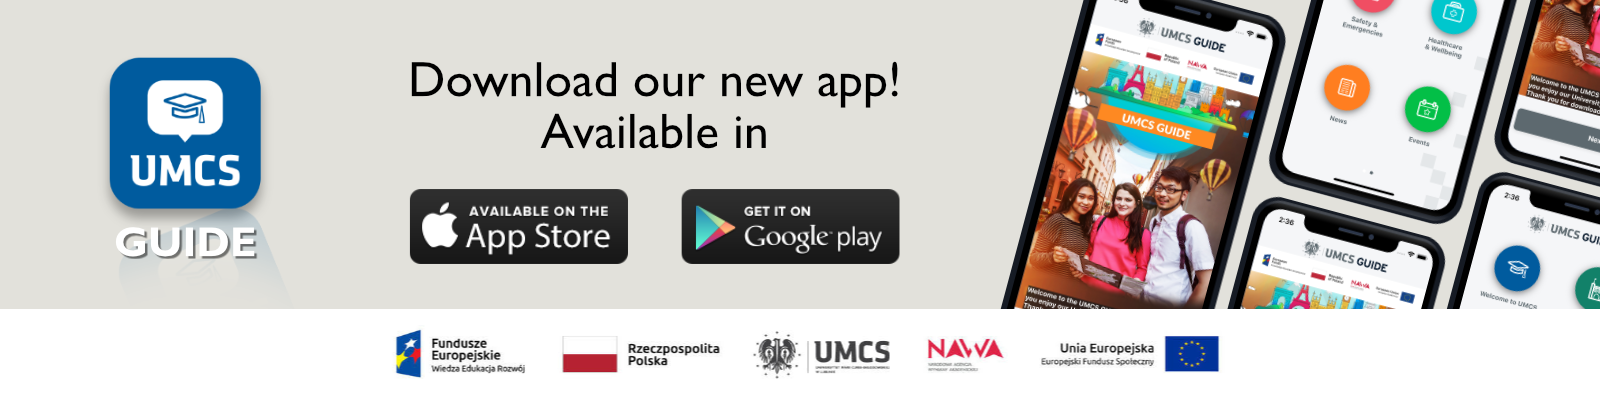 Download the UMCS Guide! The newest mobile app!